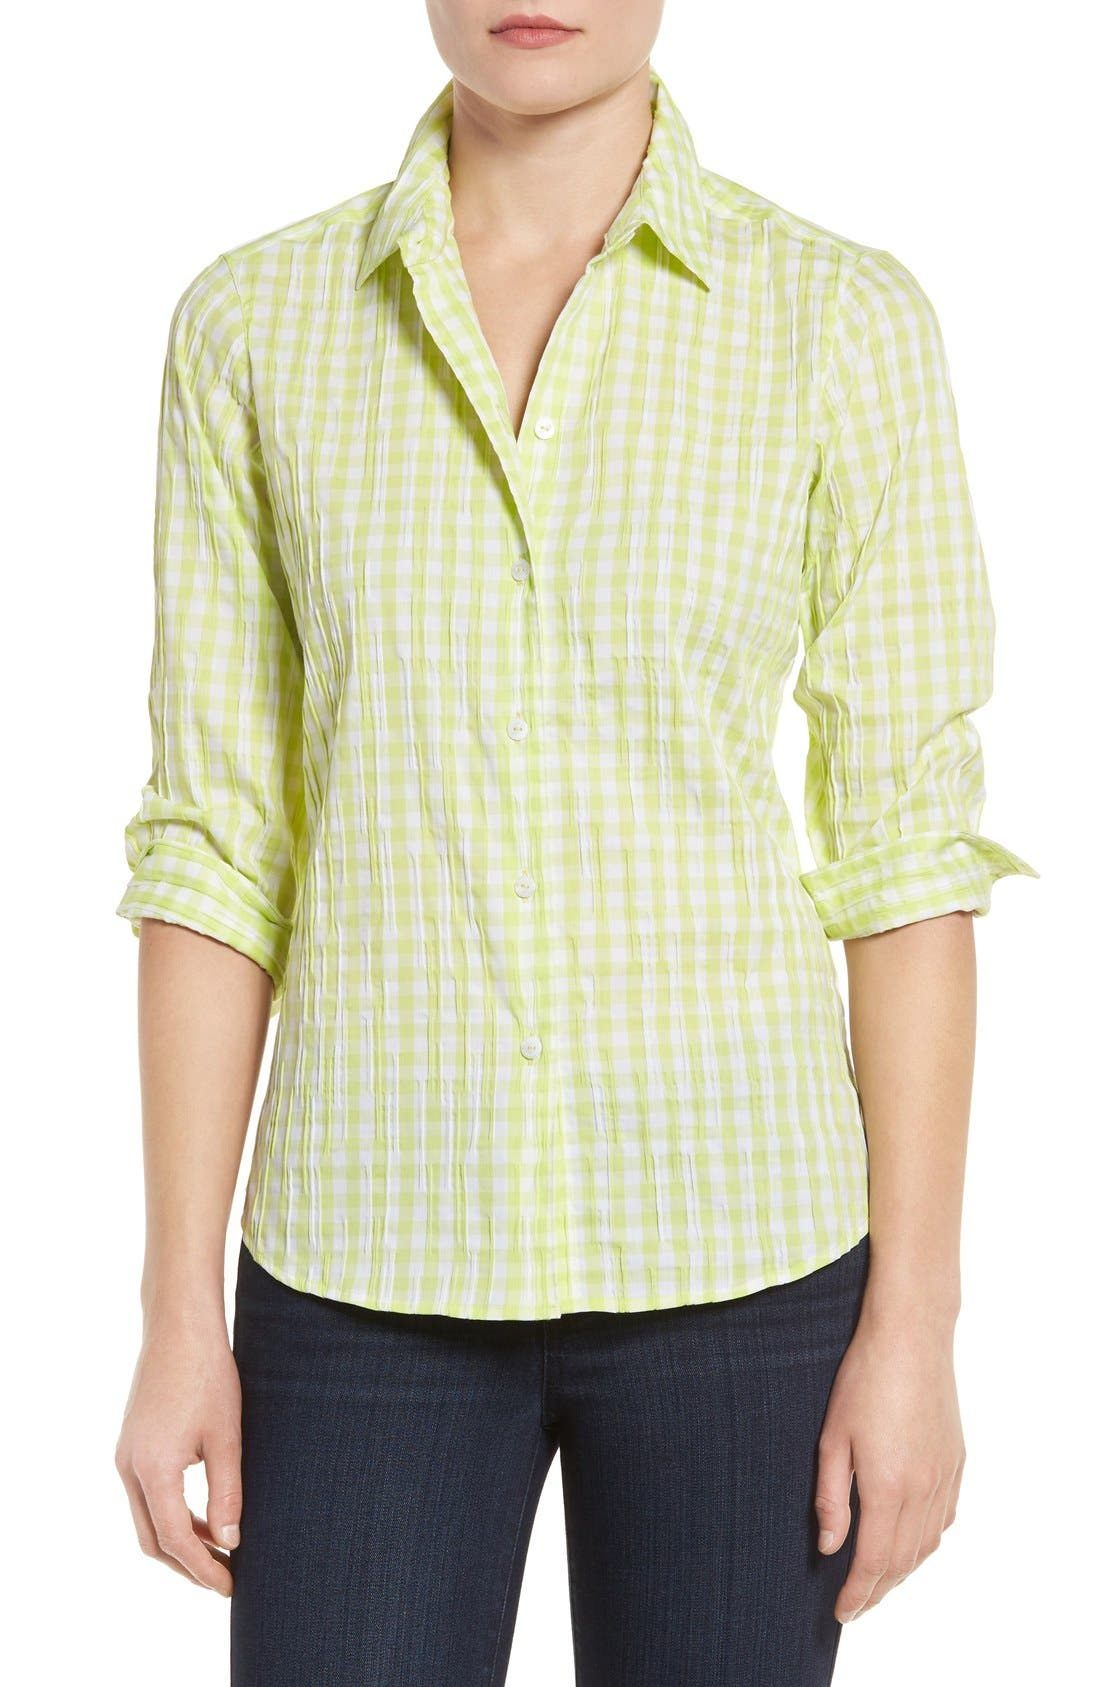 Main Image - Foxcroft Crinkled Gingham Shirt (Regular & Petite)